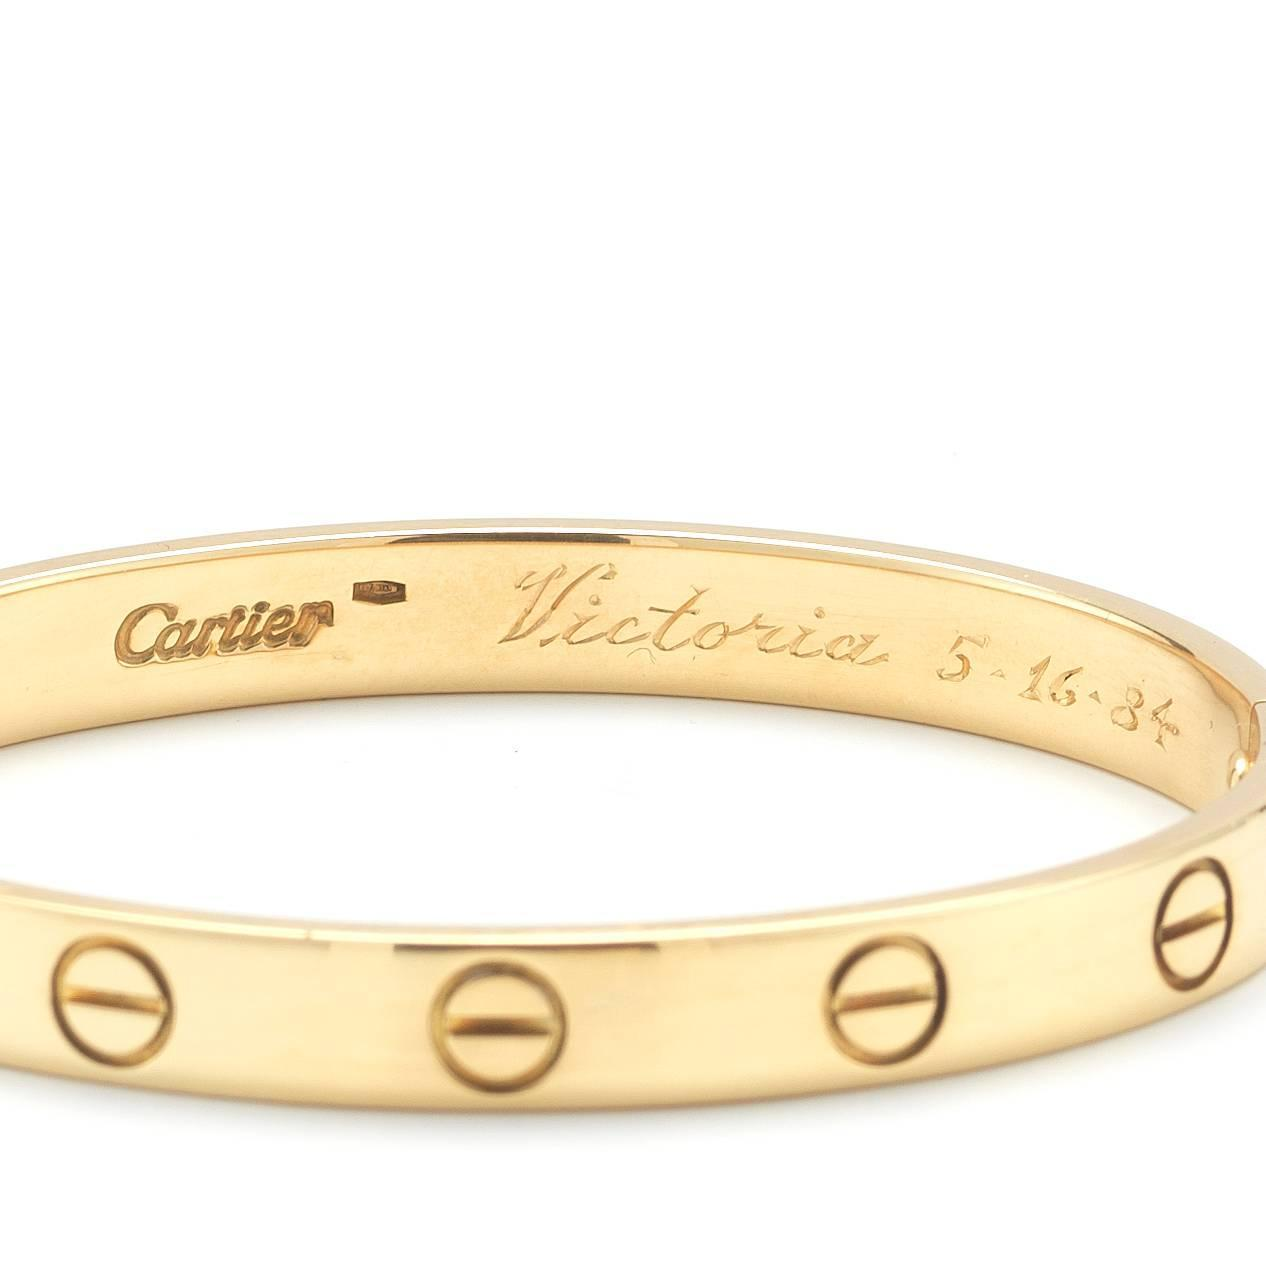 cartier bracelet sizes cartier bracelet yellow gold size 16 at 1stdibs 3010